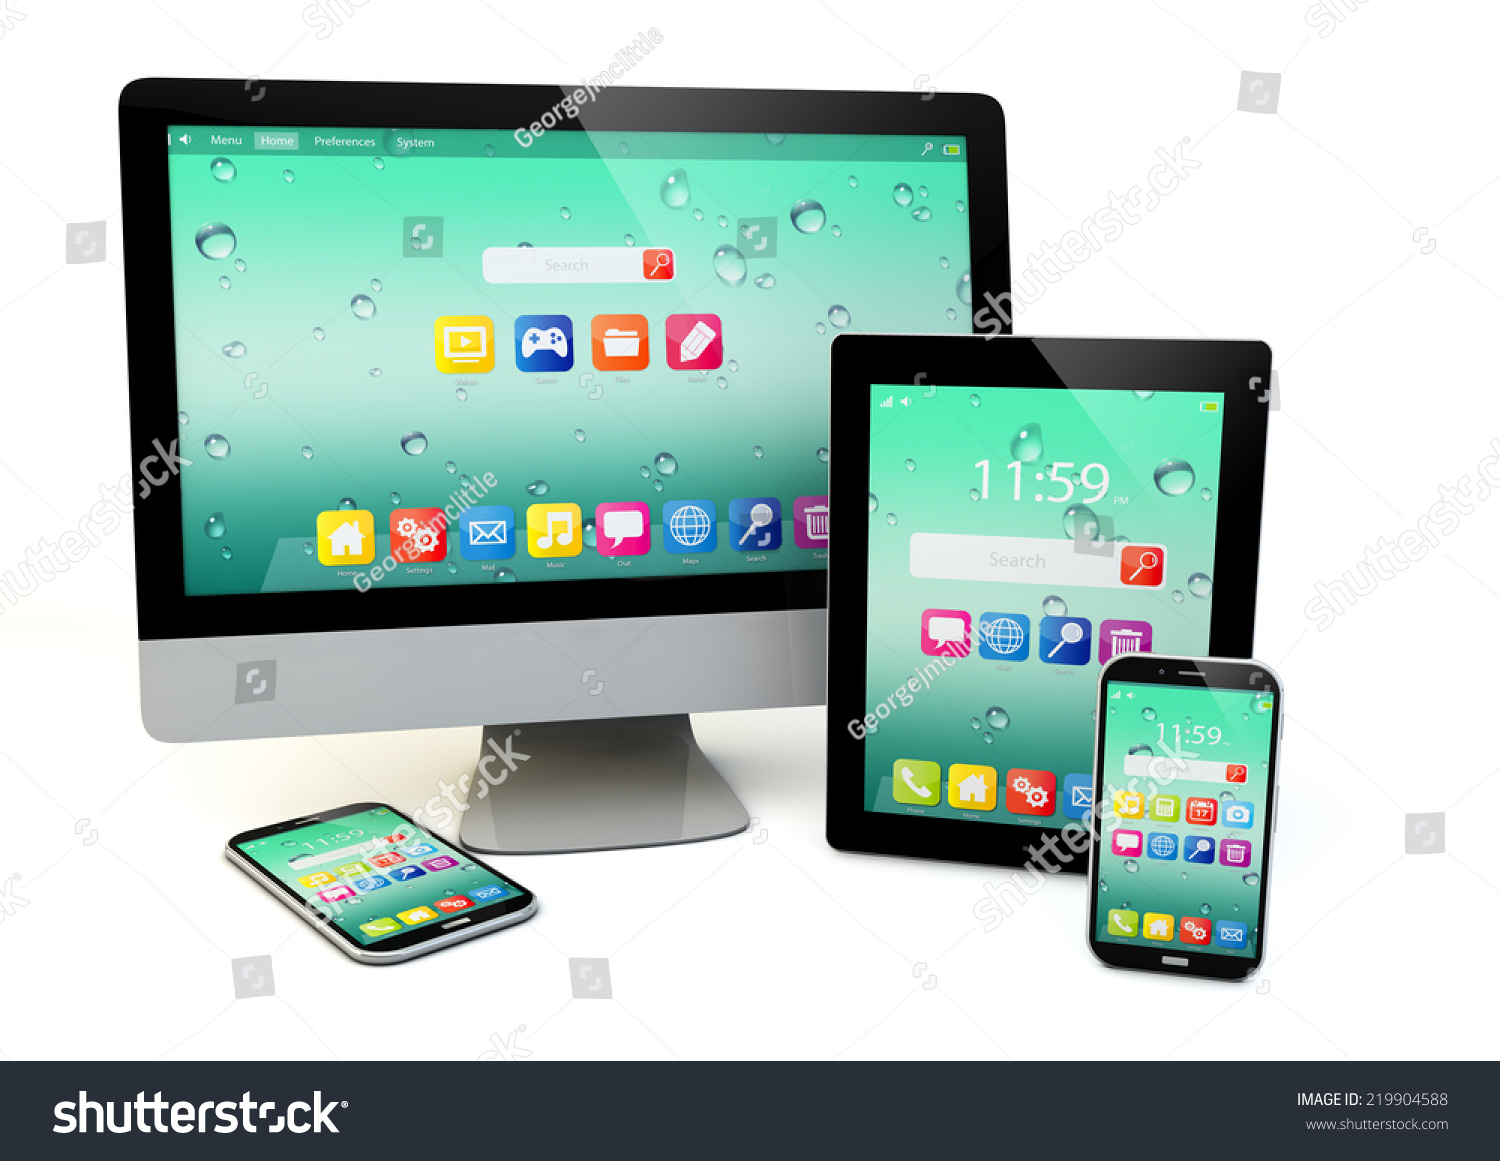 desktop or smartphone - photo #1